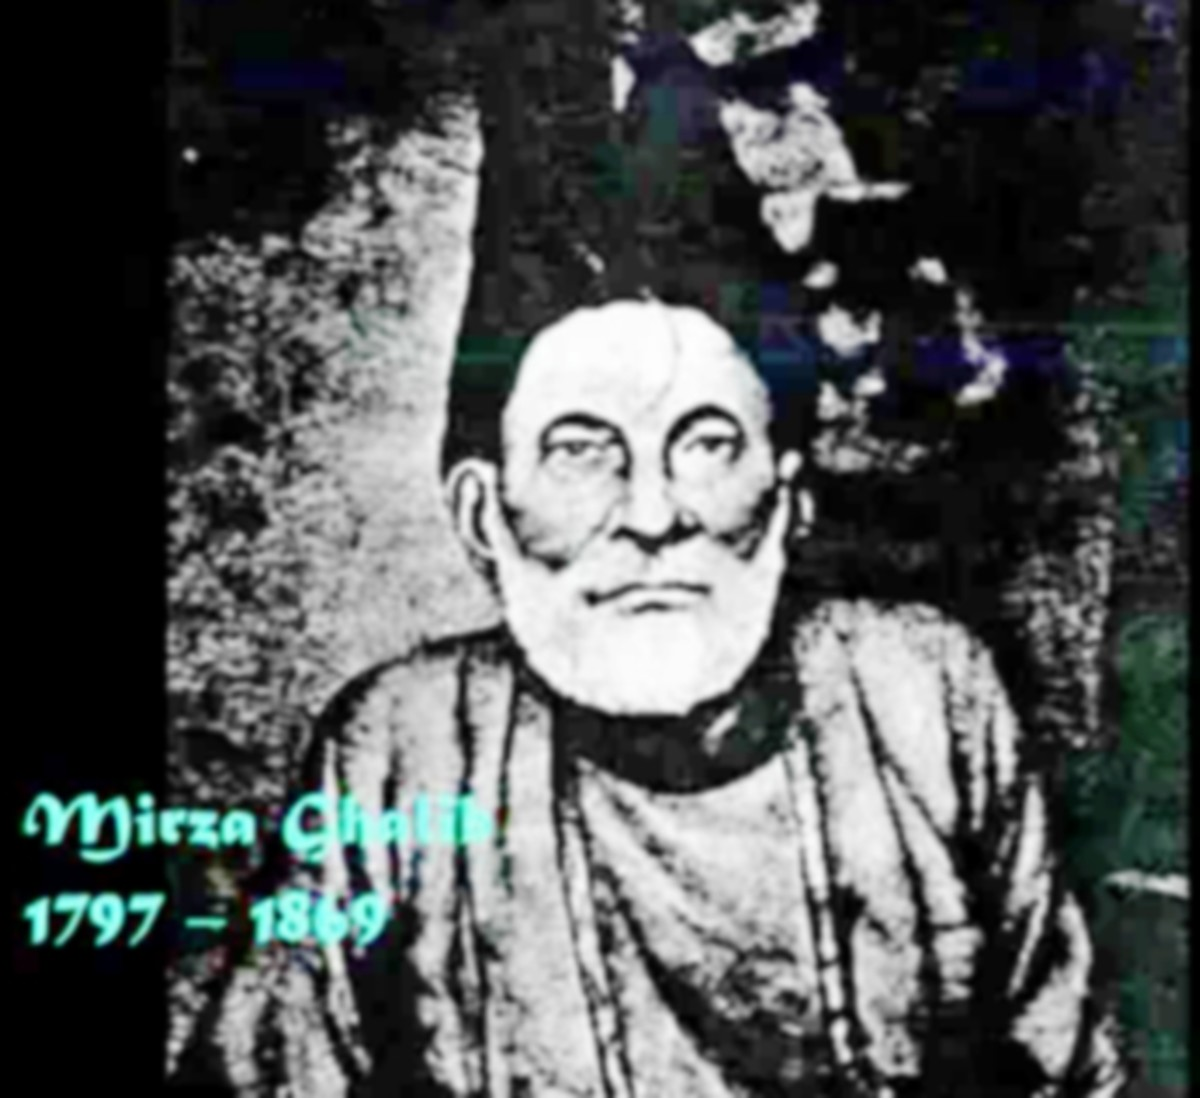 Mirza Ghalib: The greatest ghazal writer